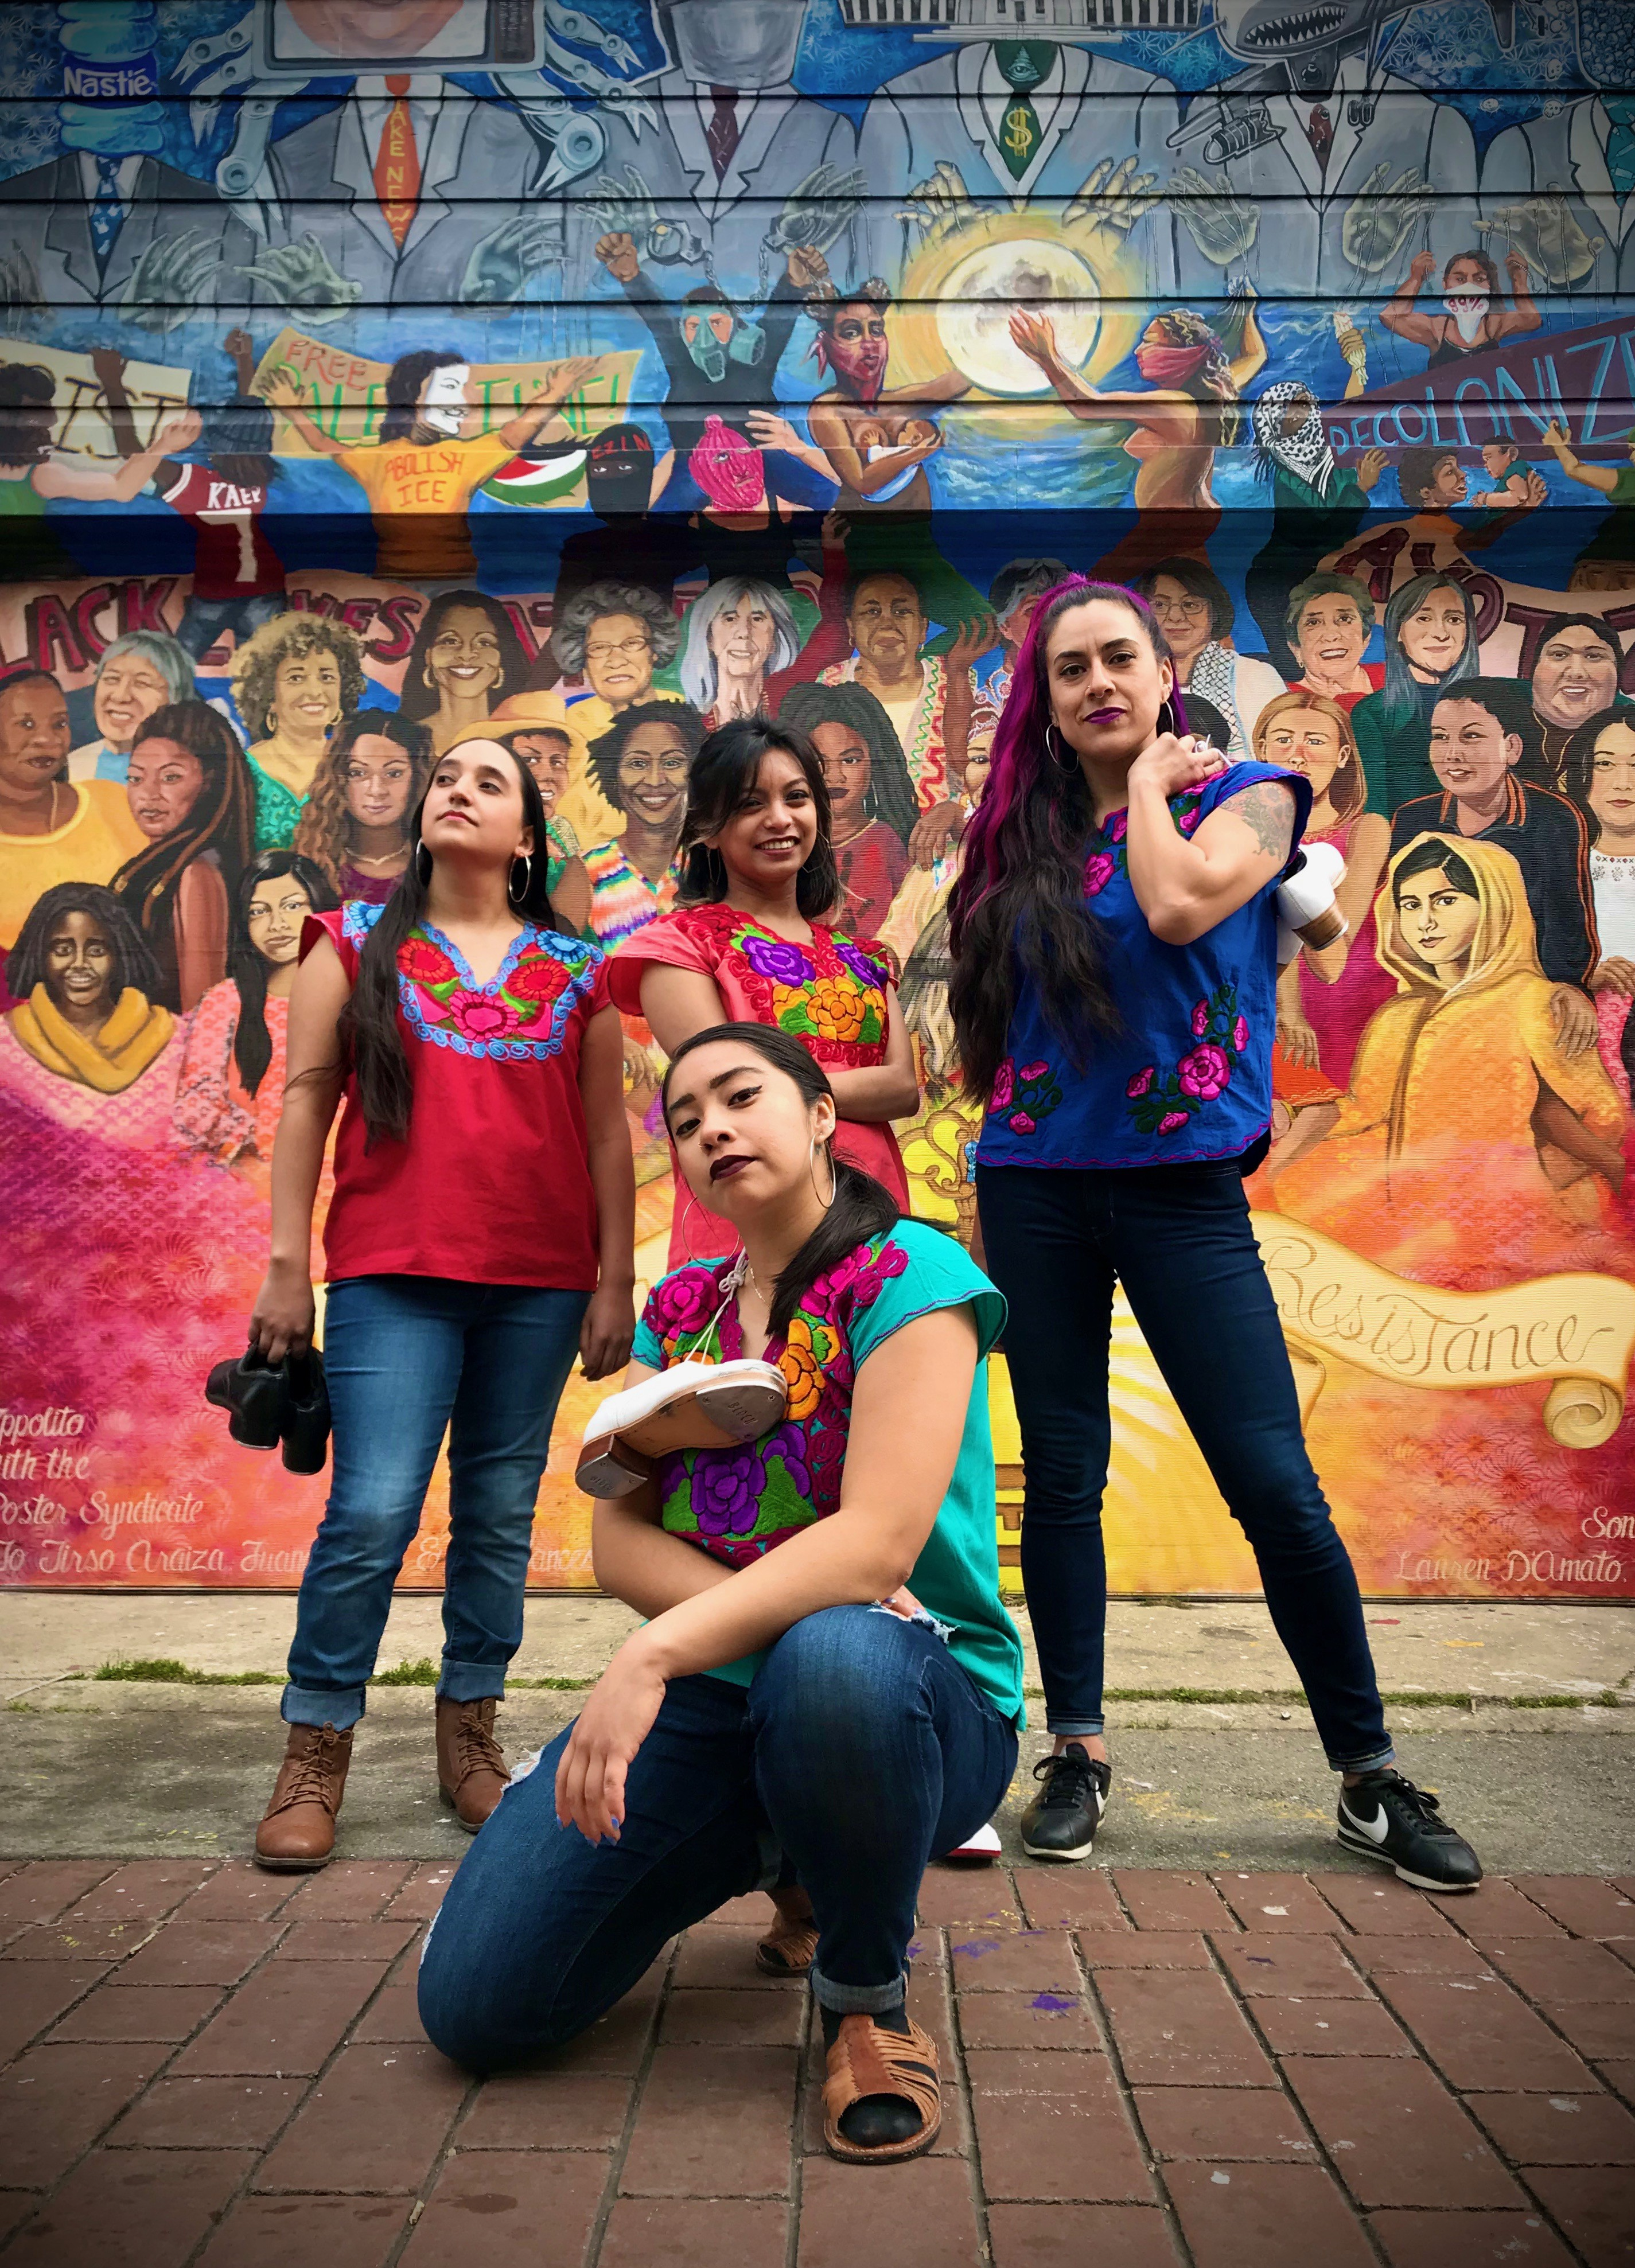 Four women pose in front of street mural